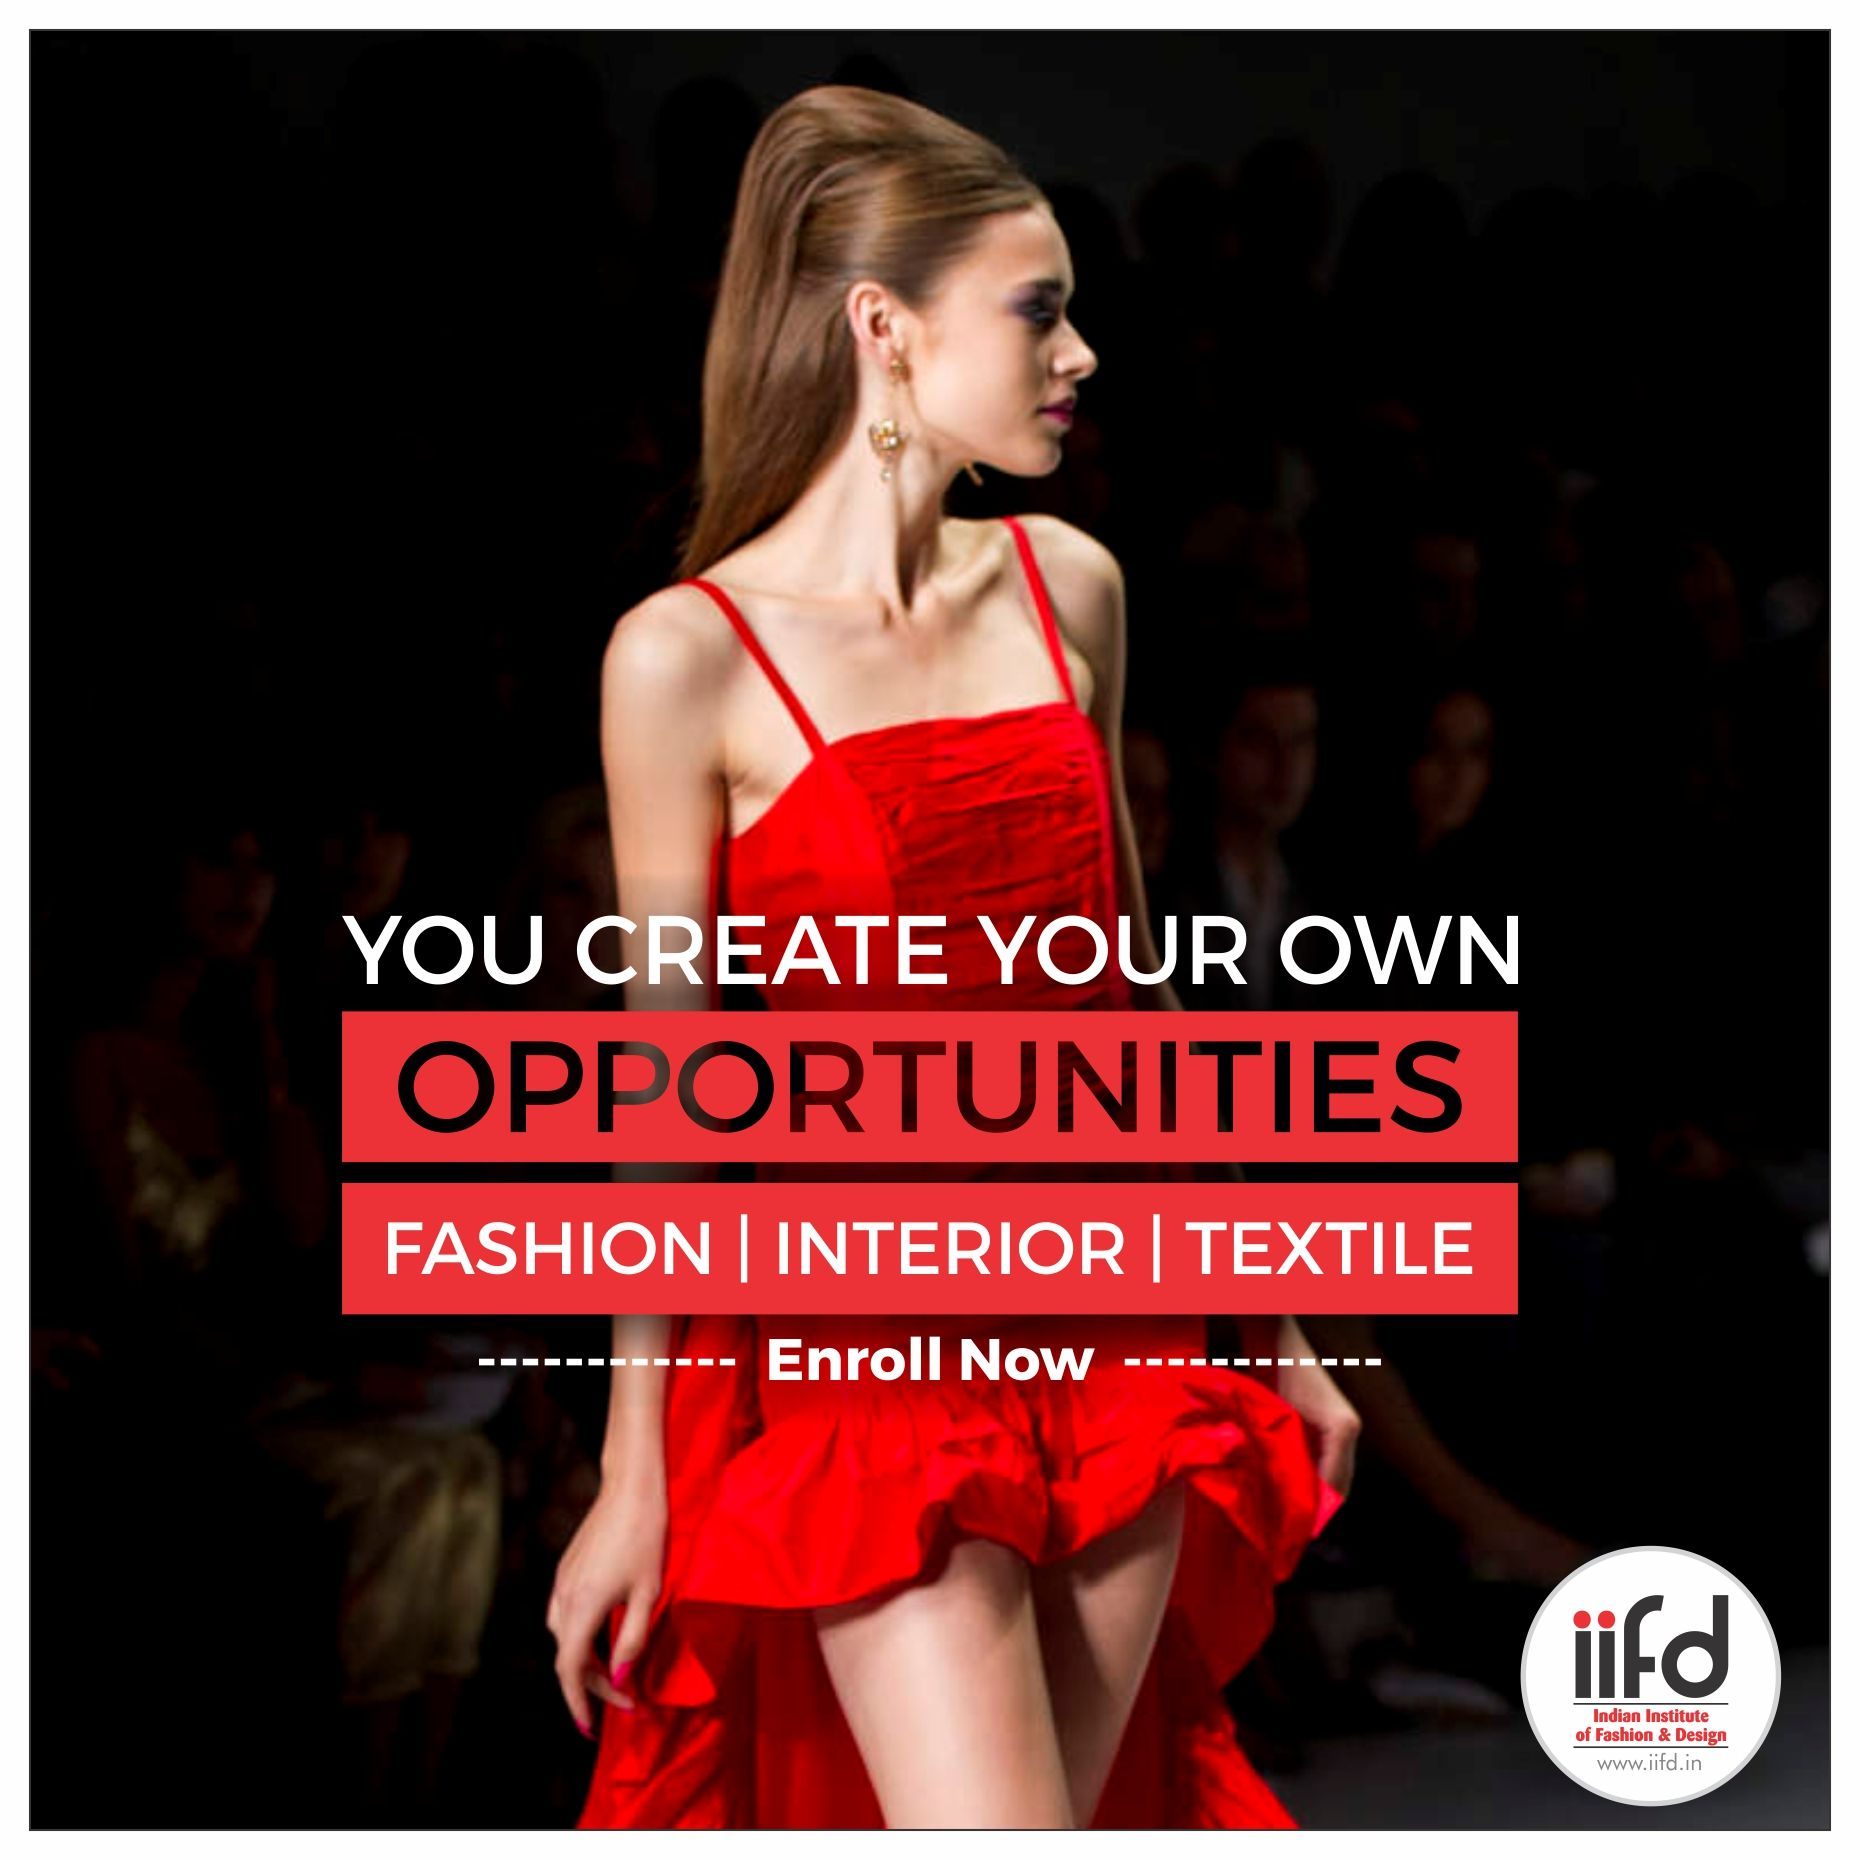 How To Become Fashion Designer After 12th Iifd Fashion Designing Institute Fashion Courses Career In Fashion Designing